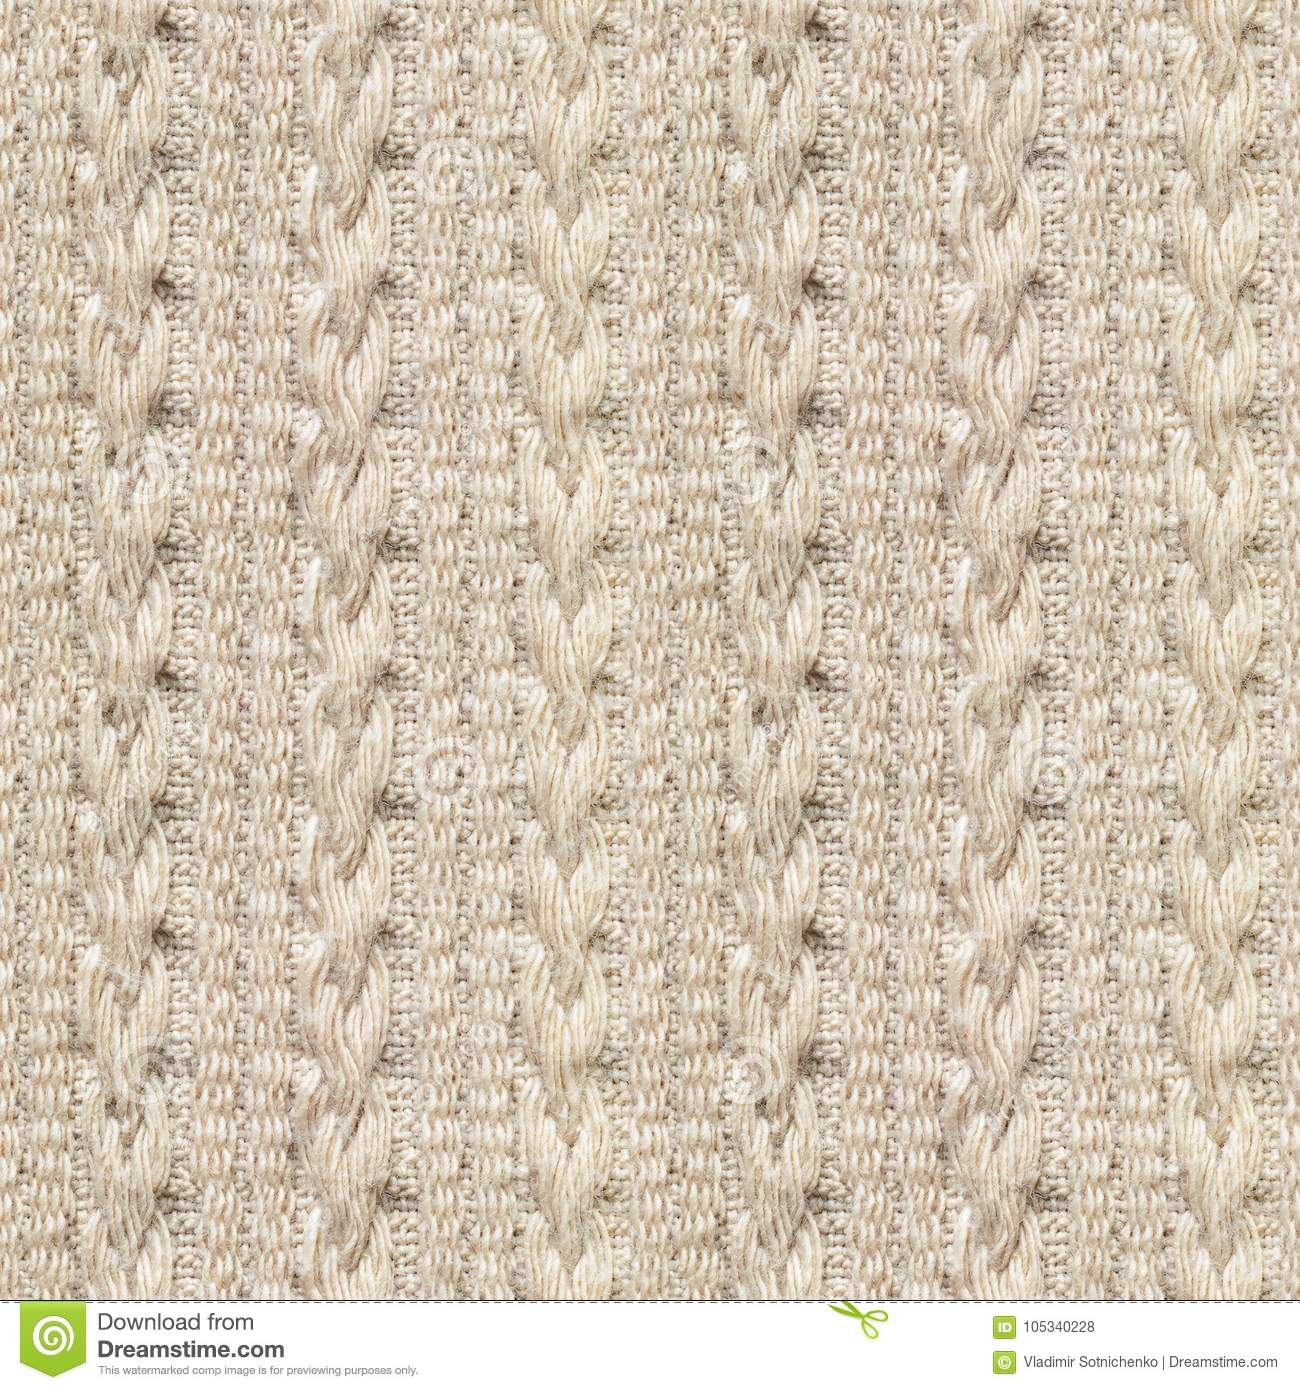 Seamless Knitwear Fabric Texture Stock Photo - Image of cozy, design ...